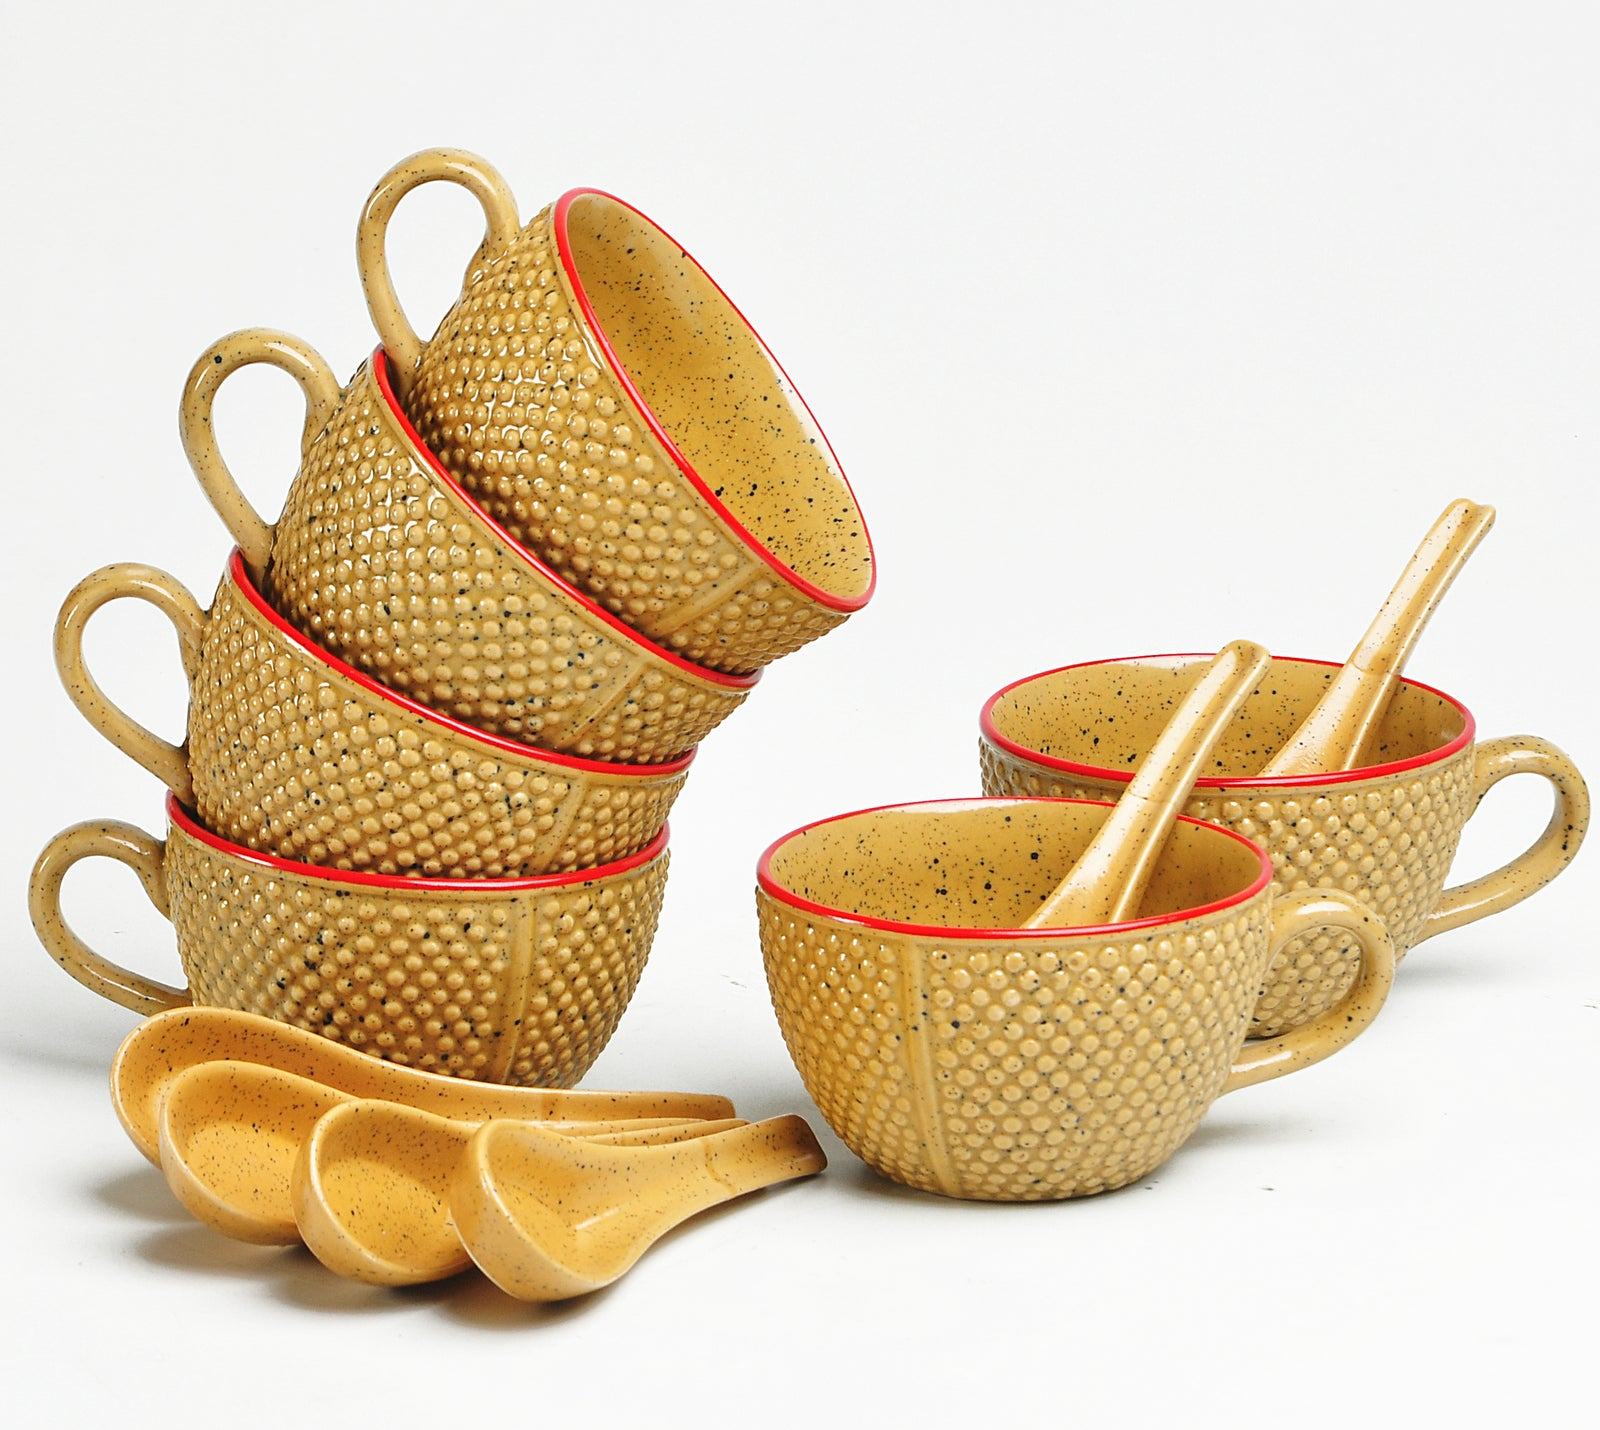 Golden and Orange Punkt Soup Bowls - Set of 6